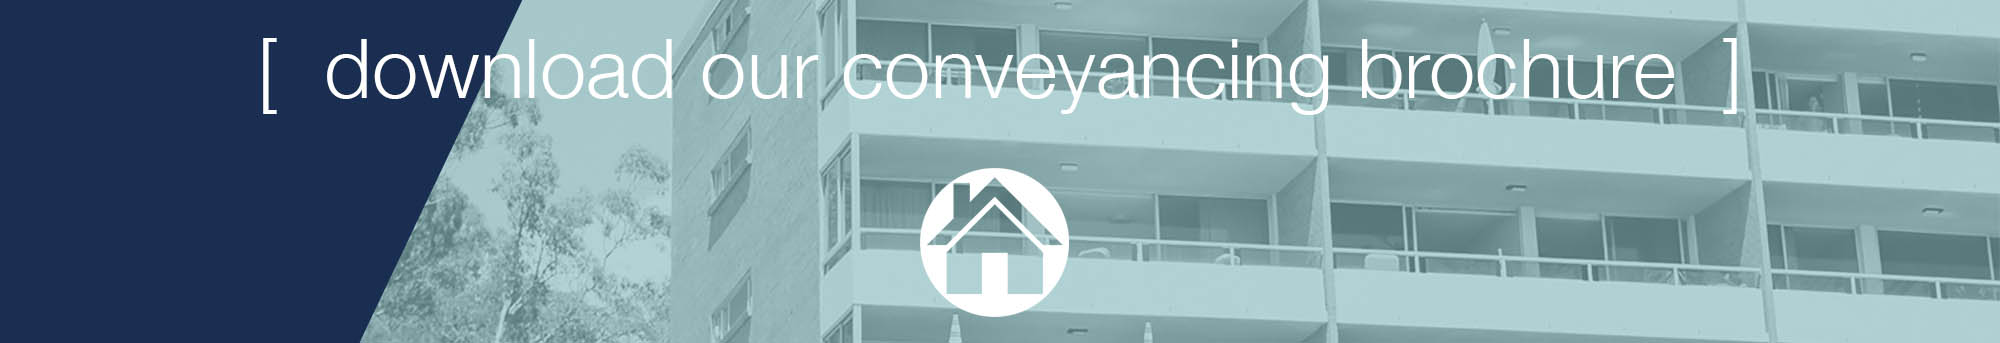 If you are looking to buy a property in Brisbane, or on the Gold Coast, our conveyancing solicitors have written some great articles about life in the various suburbs and what to expect when you buy.